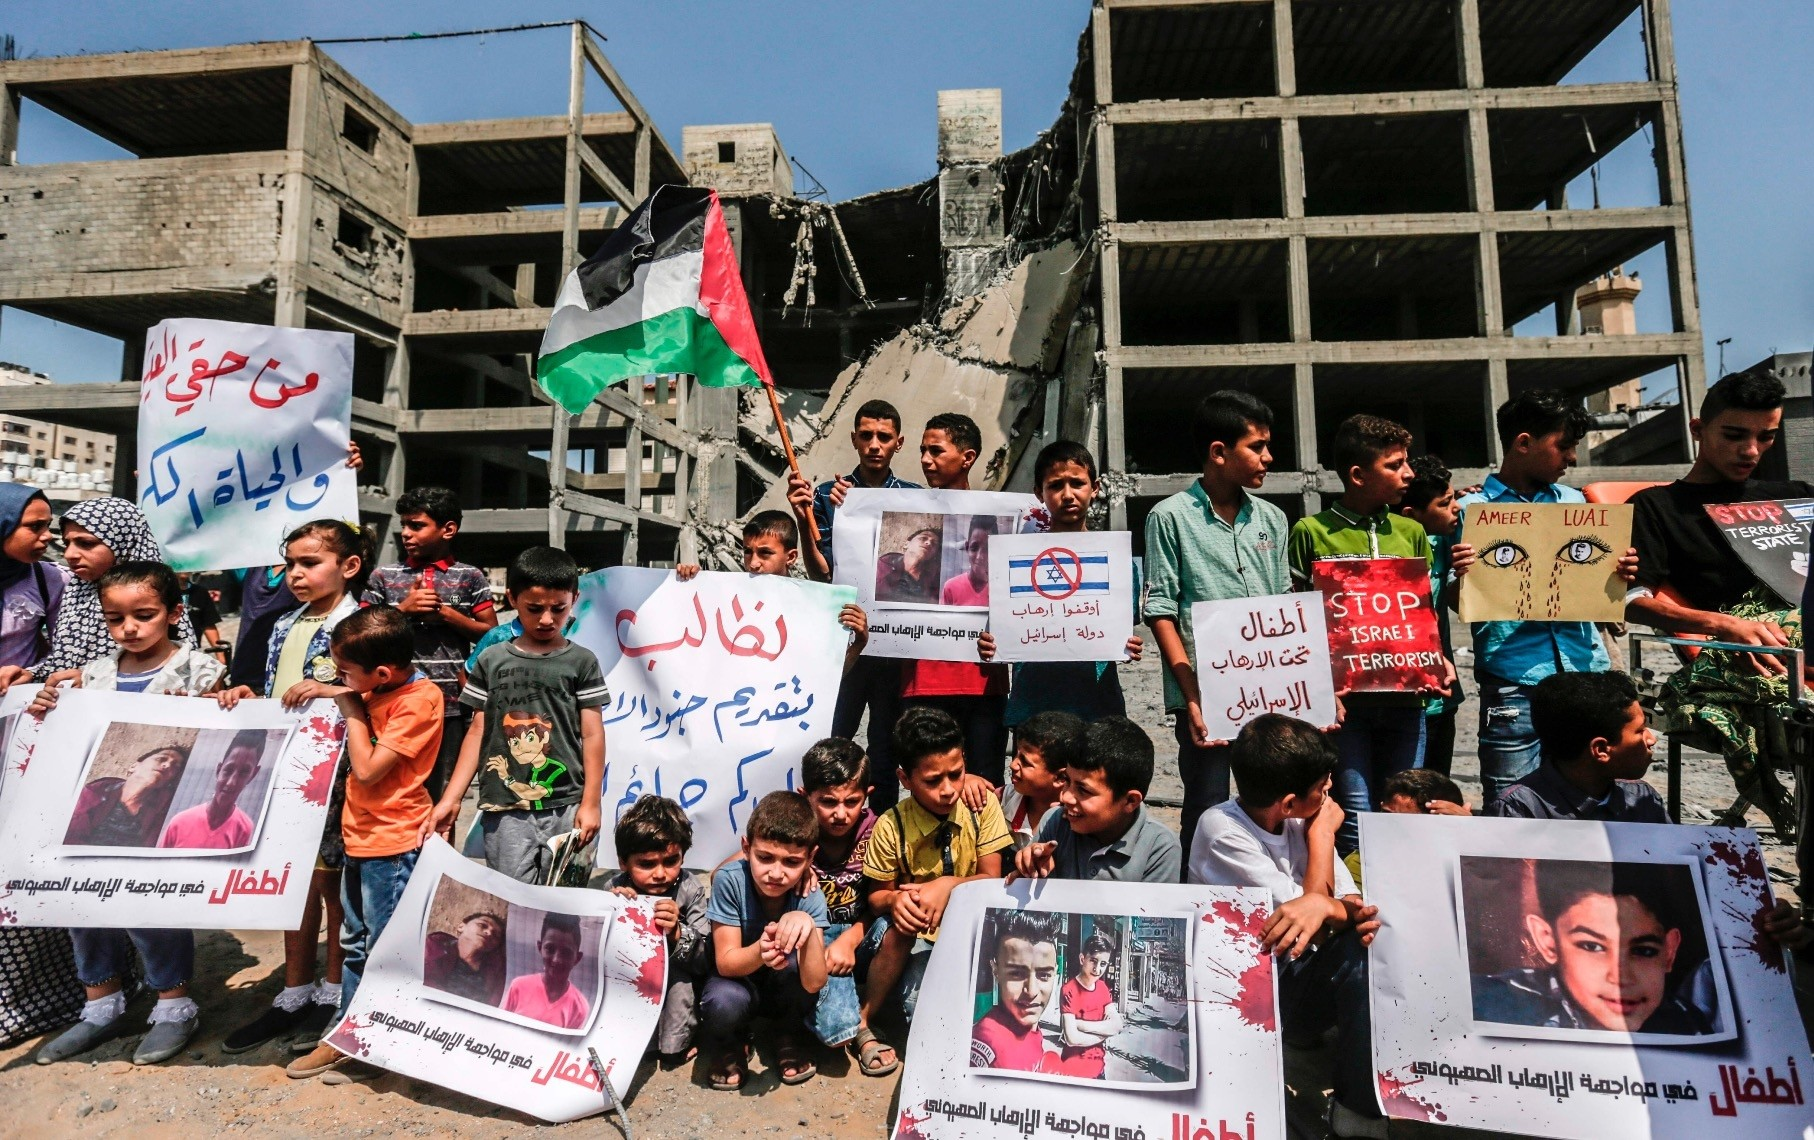 Palestinian children raise Palestinian flags in protest at a demonstration, Gaza City, July 15.